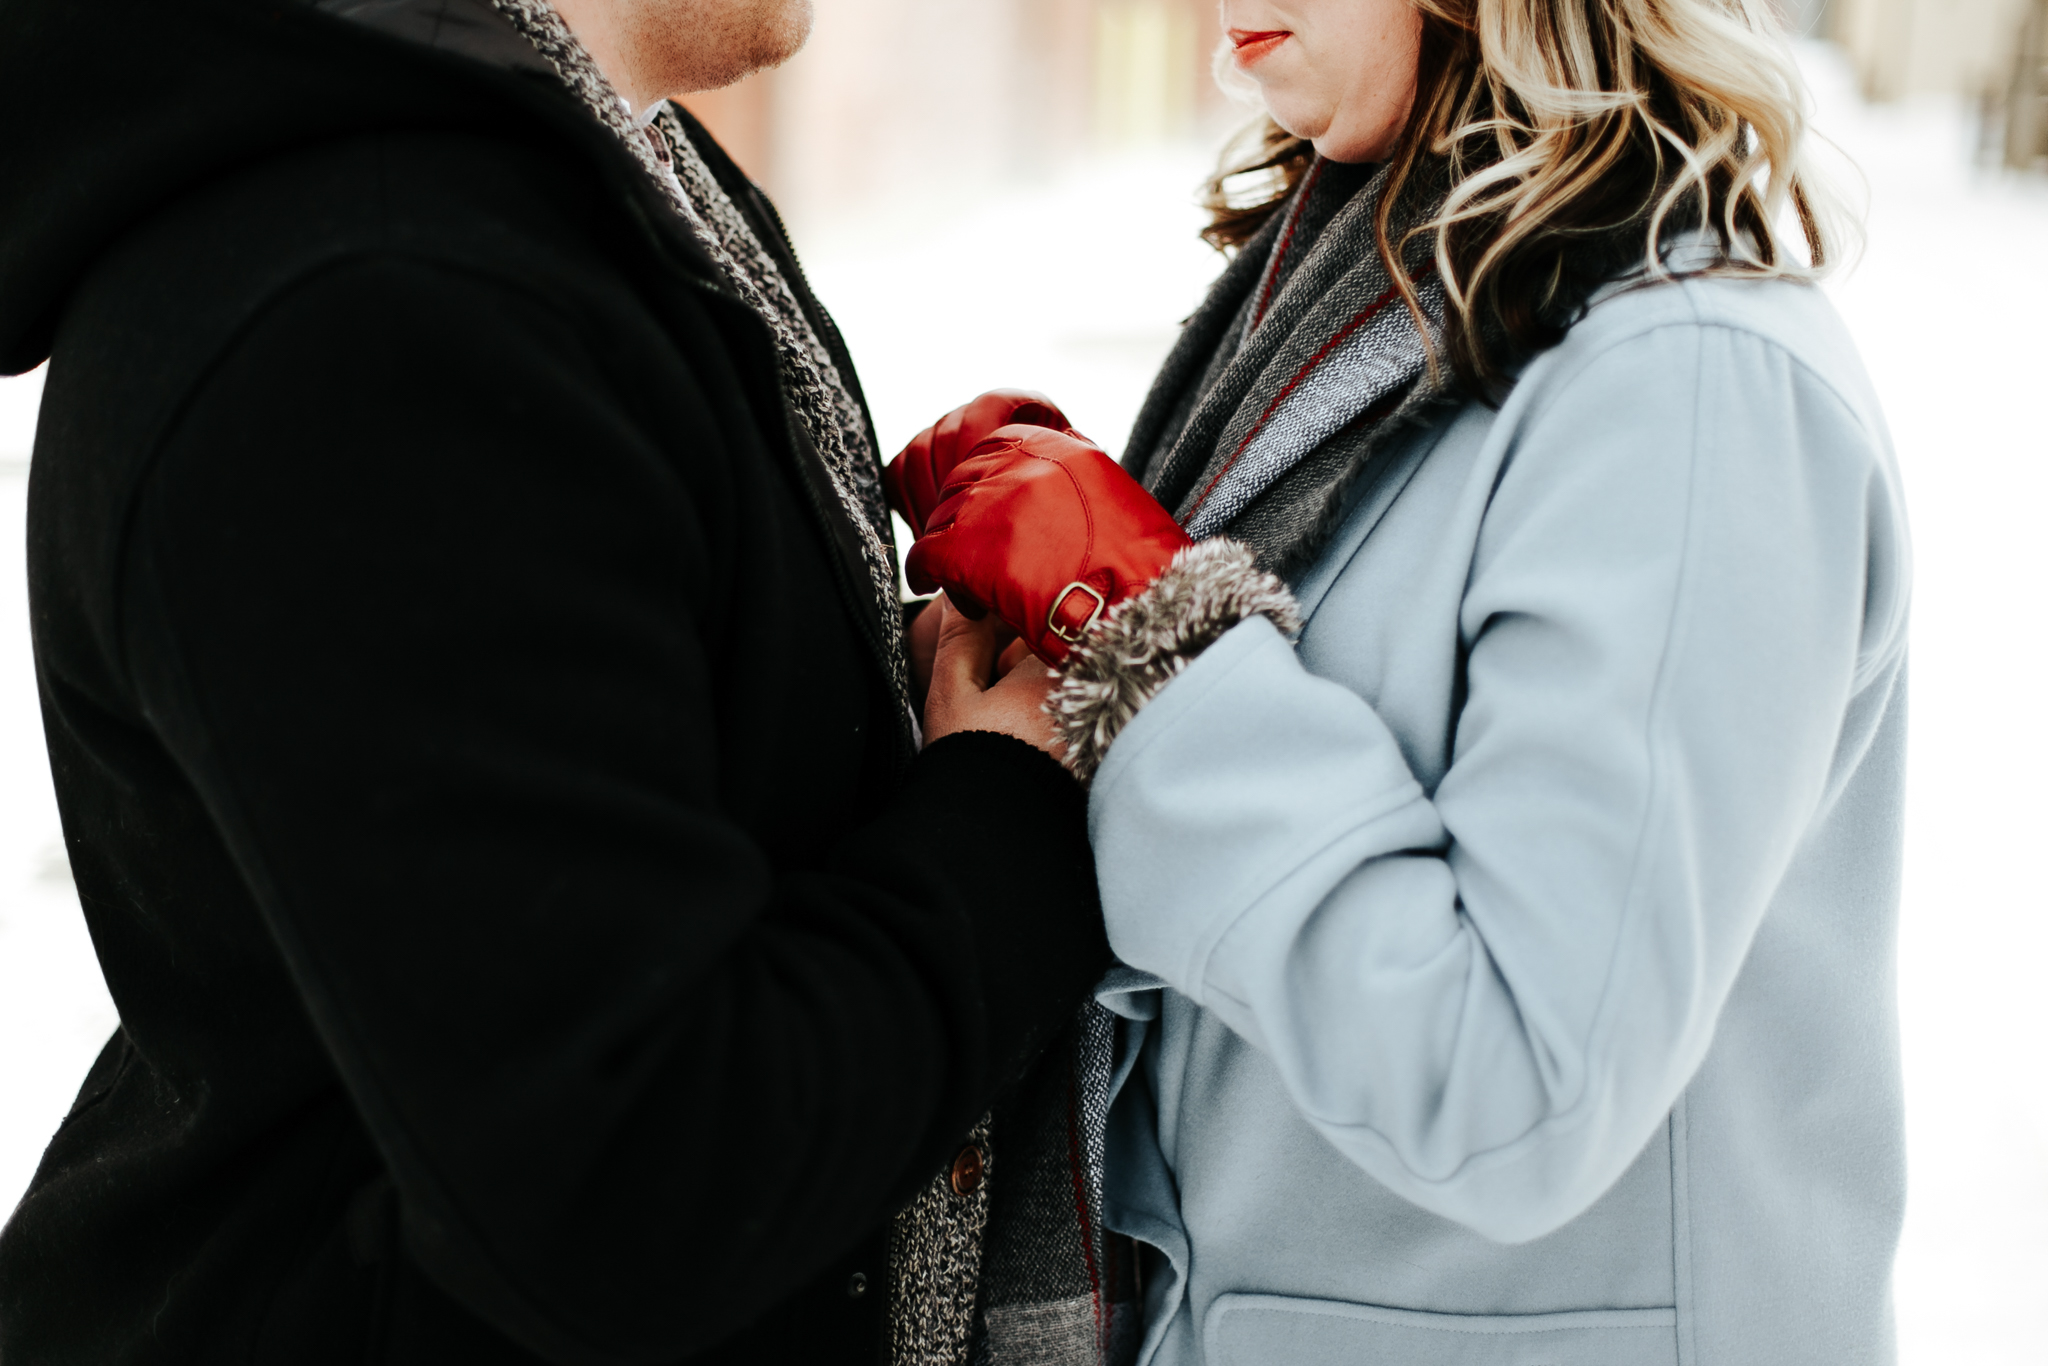 lethbridge-photographer-love-and-be-loved-photography-brandon-danielle-winter-engagement-downtown-yql-picture-image-photo-38.jpg